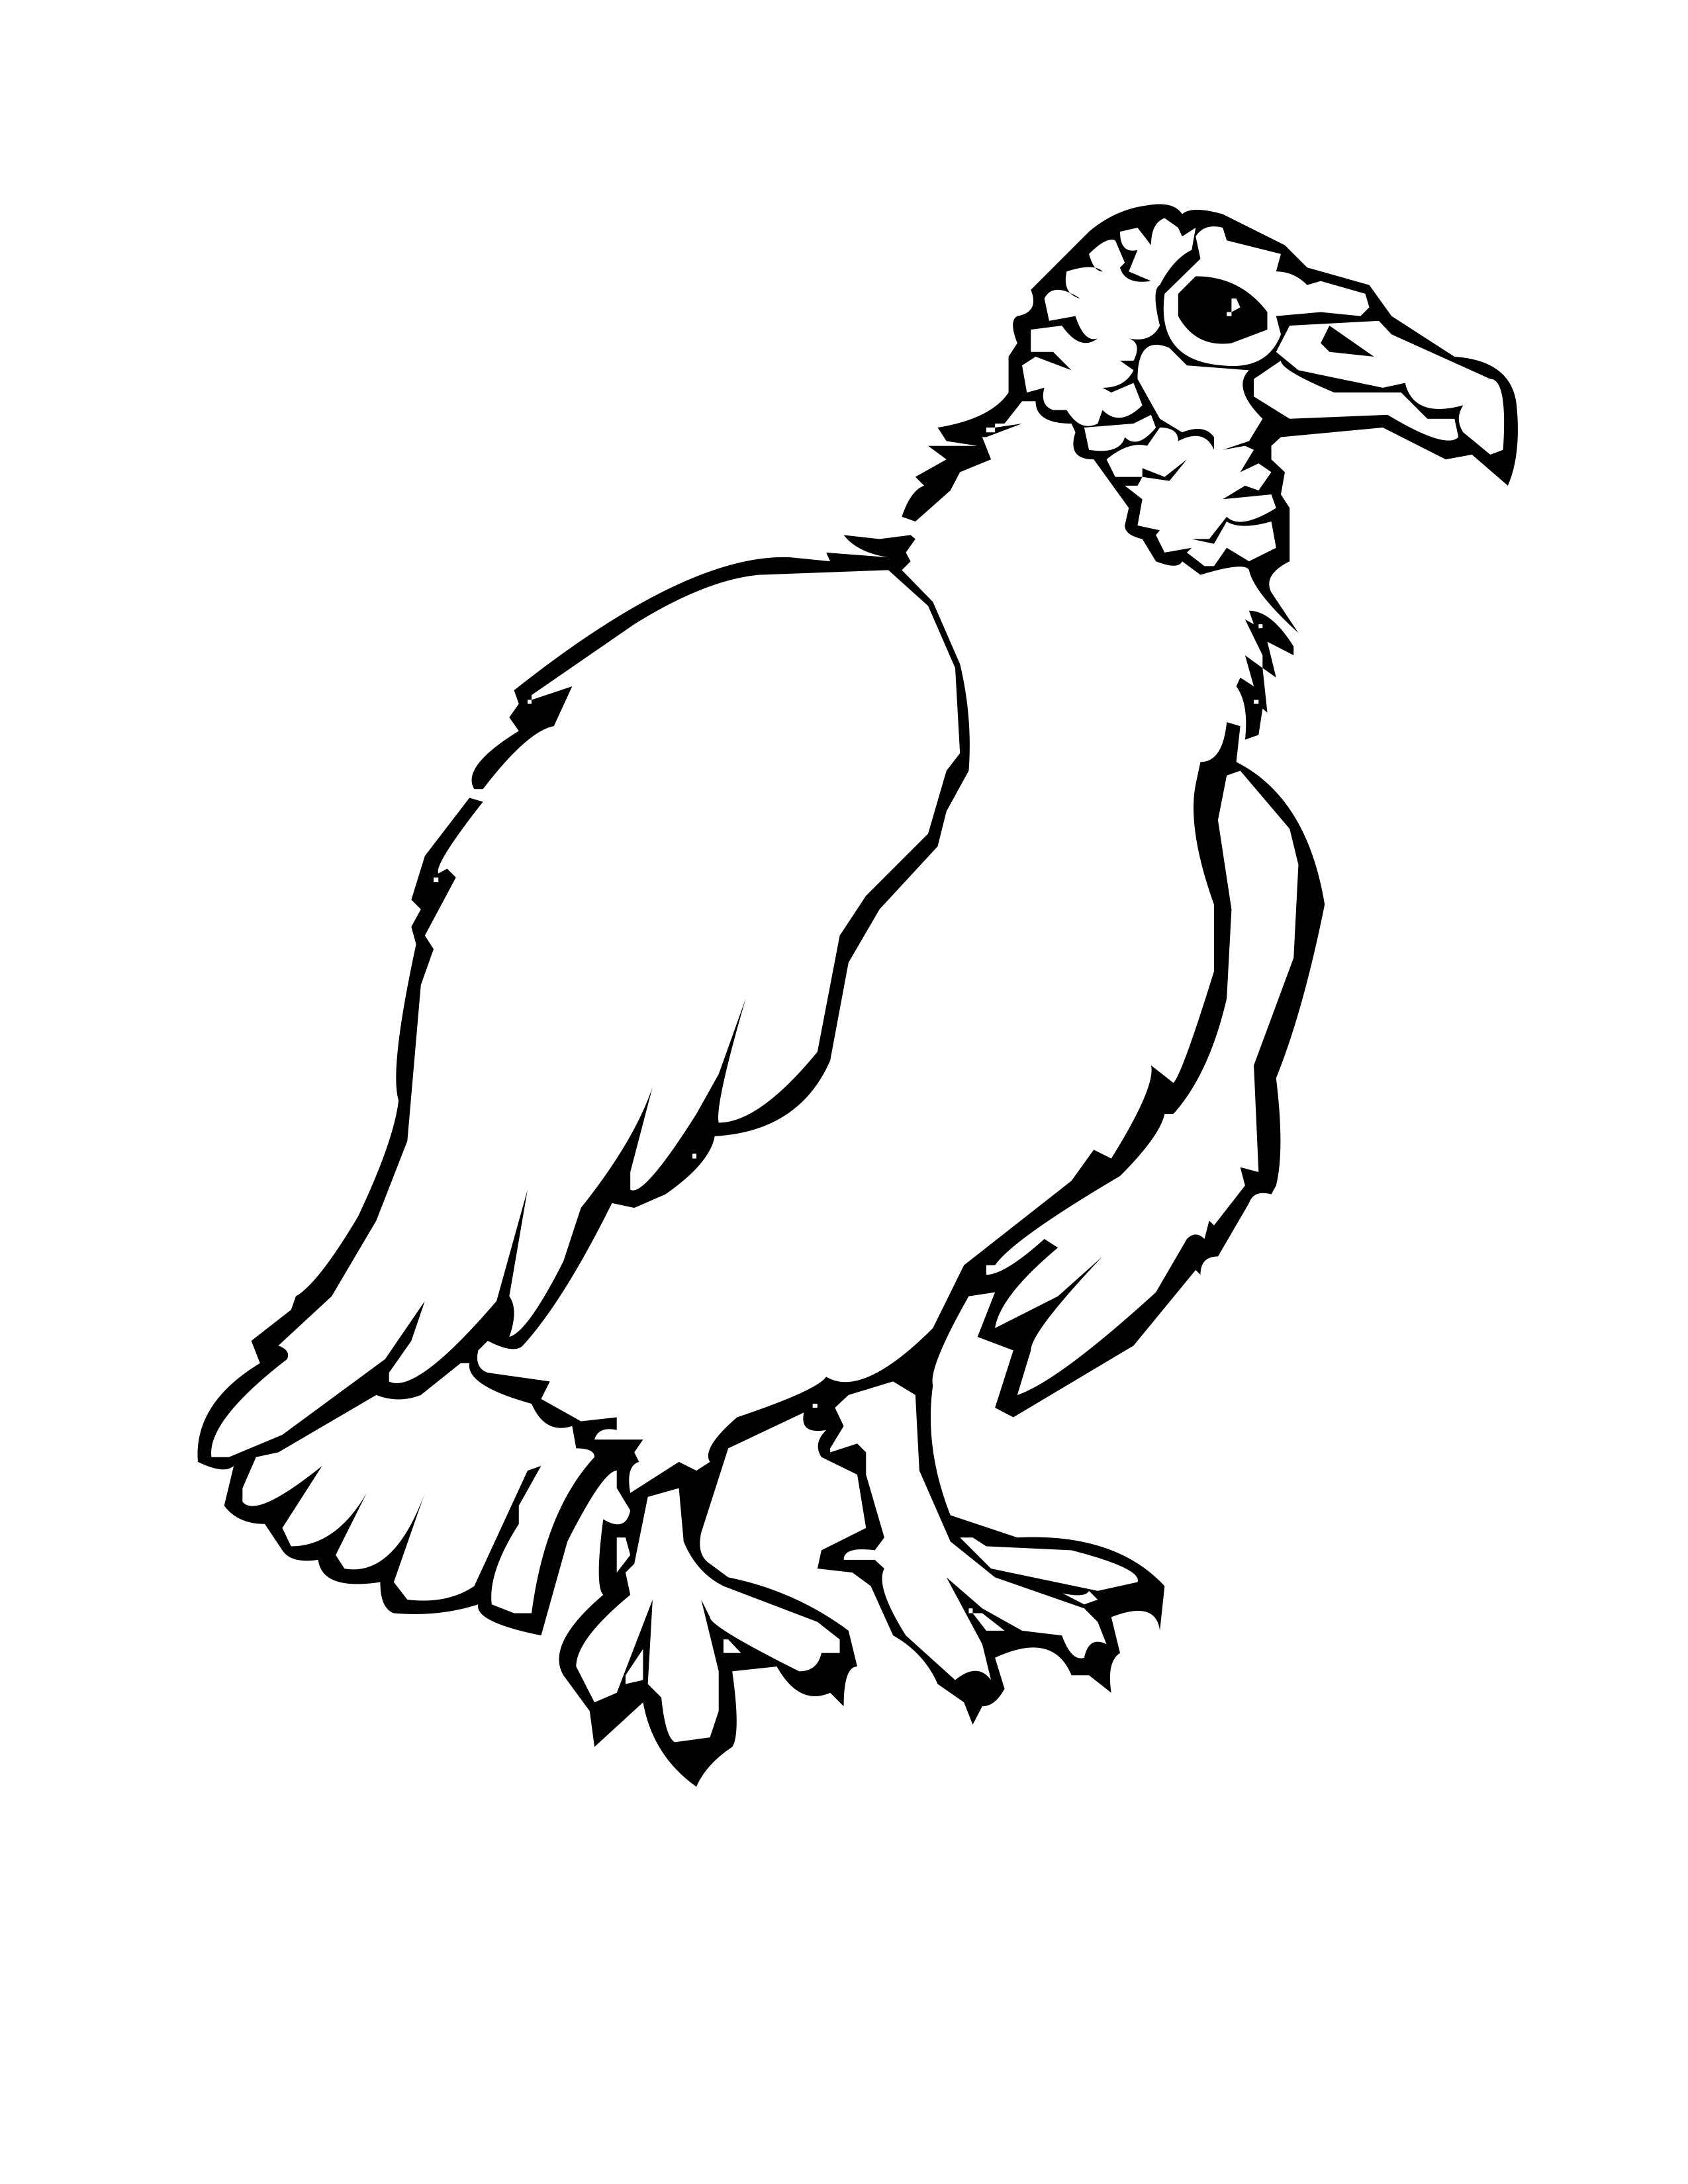 Black vulture clipart 20 free Cliparts.